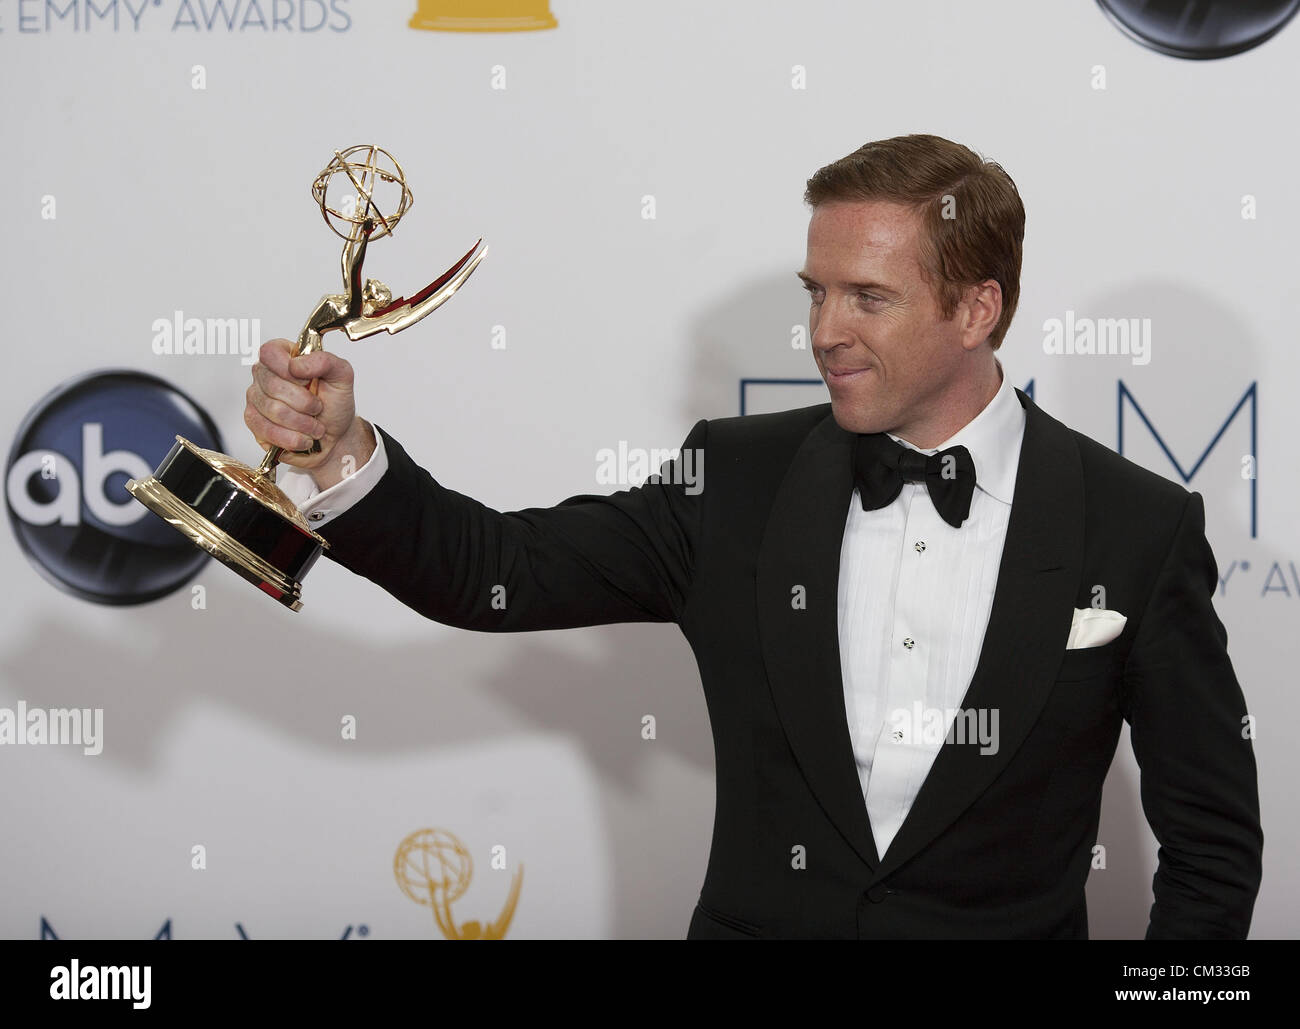 Sept. 23, 2012 - Los Angeles, California, USA - Actor Damian Lewis, winner Outstanding Lead Actor in a Drama Series - Stock Image